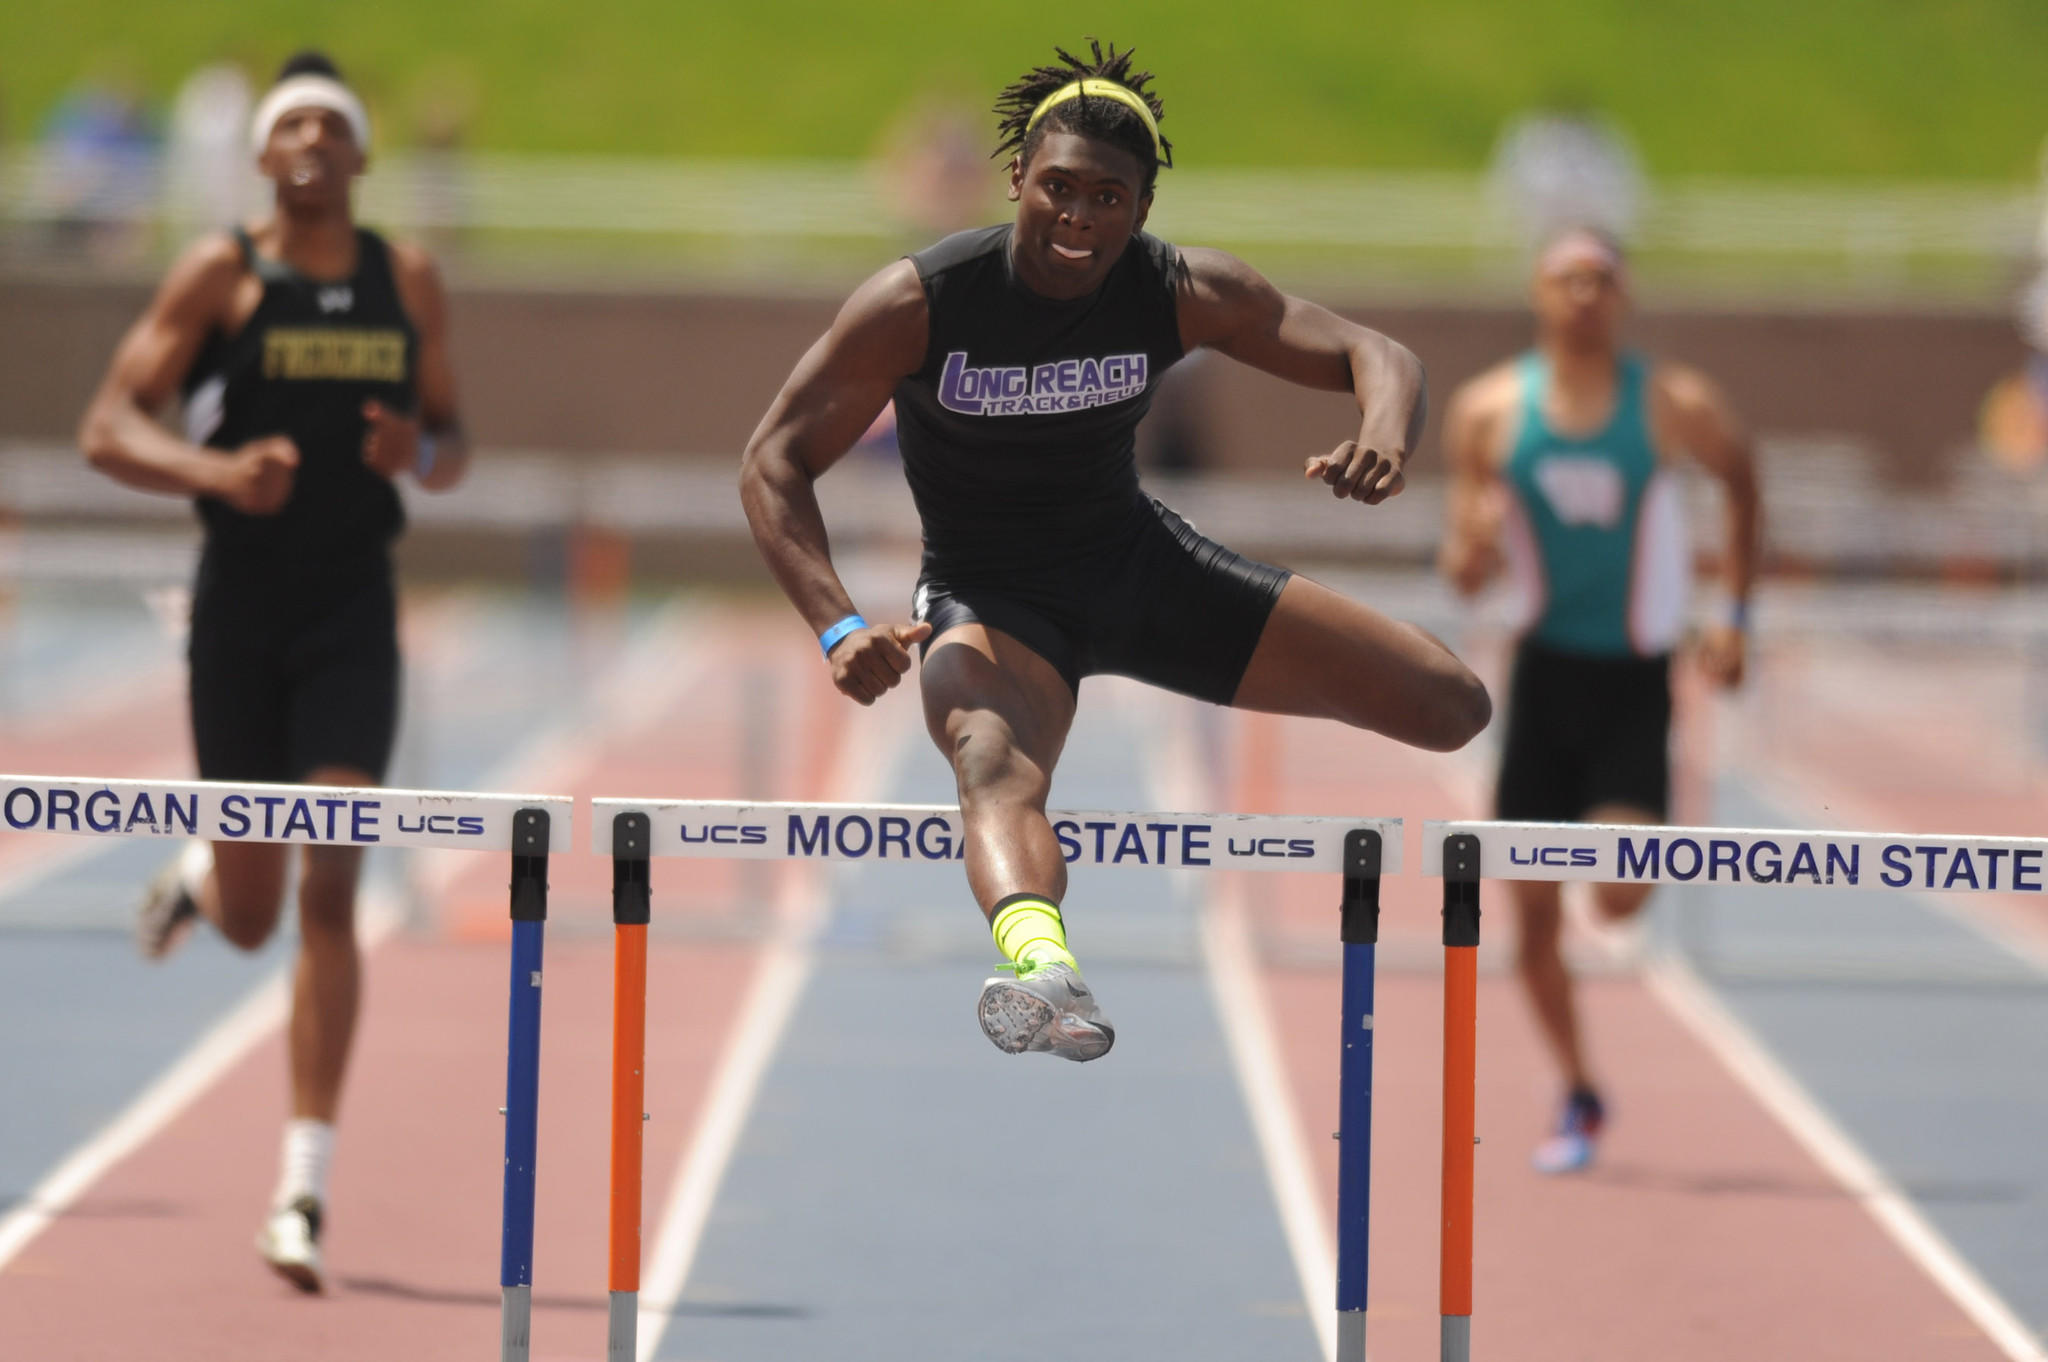 Long Reach's Robert Carter clears the final hurdle on his way to winning the Class 3A boys 300-meter hurdles during the 2014 track and field state championships at Morgan State University.